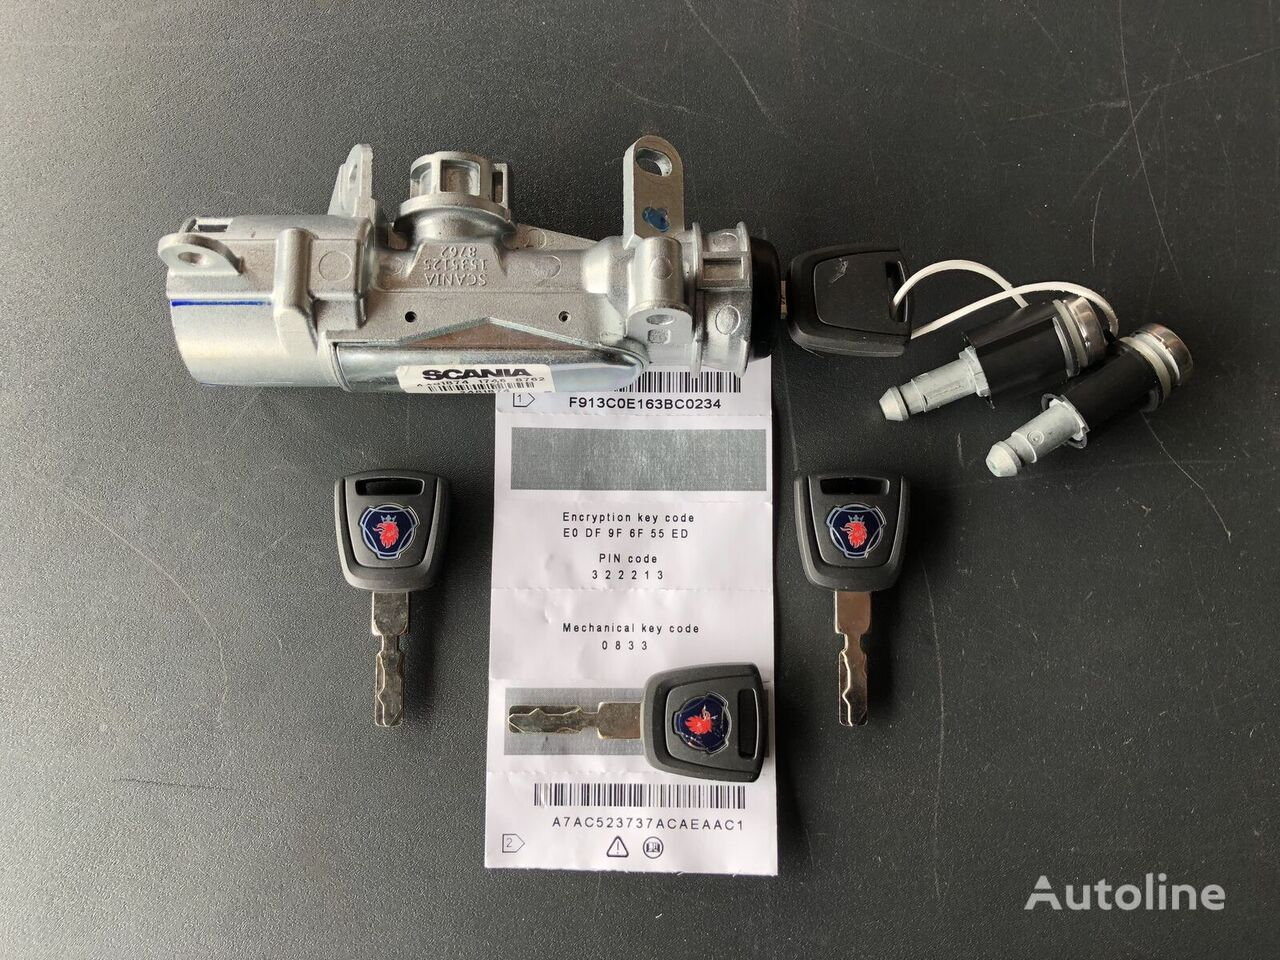 SCANIA | Keys + Locker and Codes SCANIA spare parts for truck